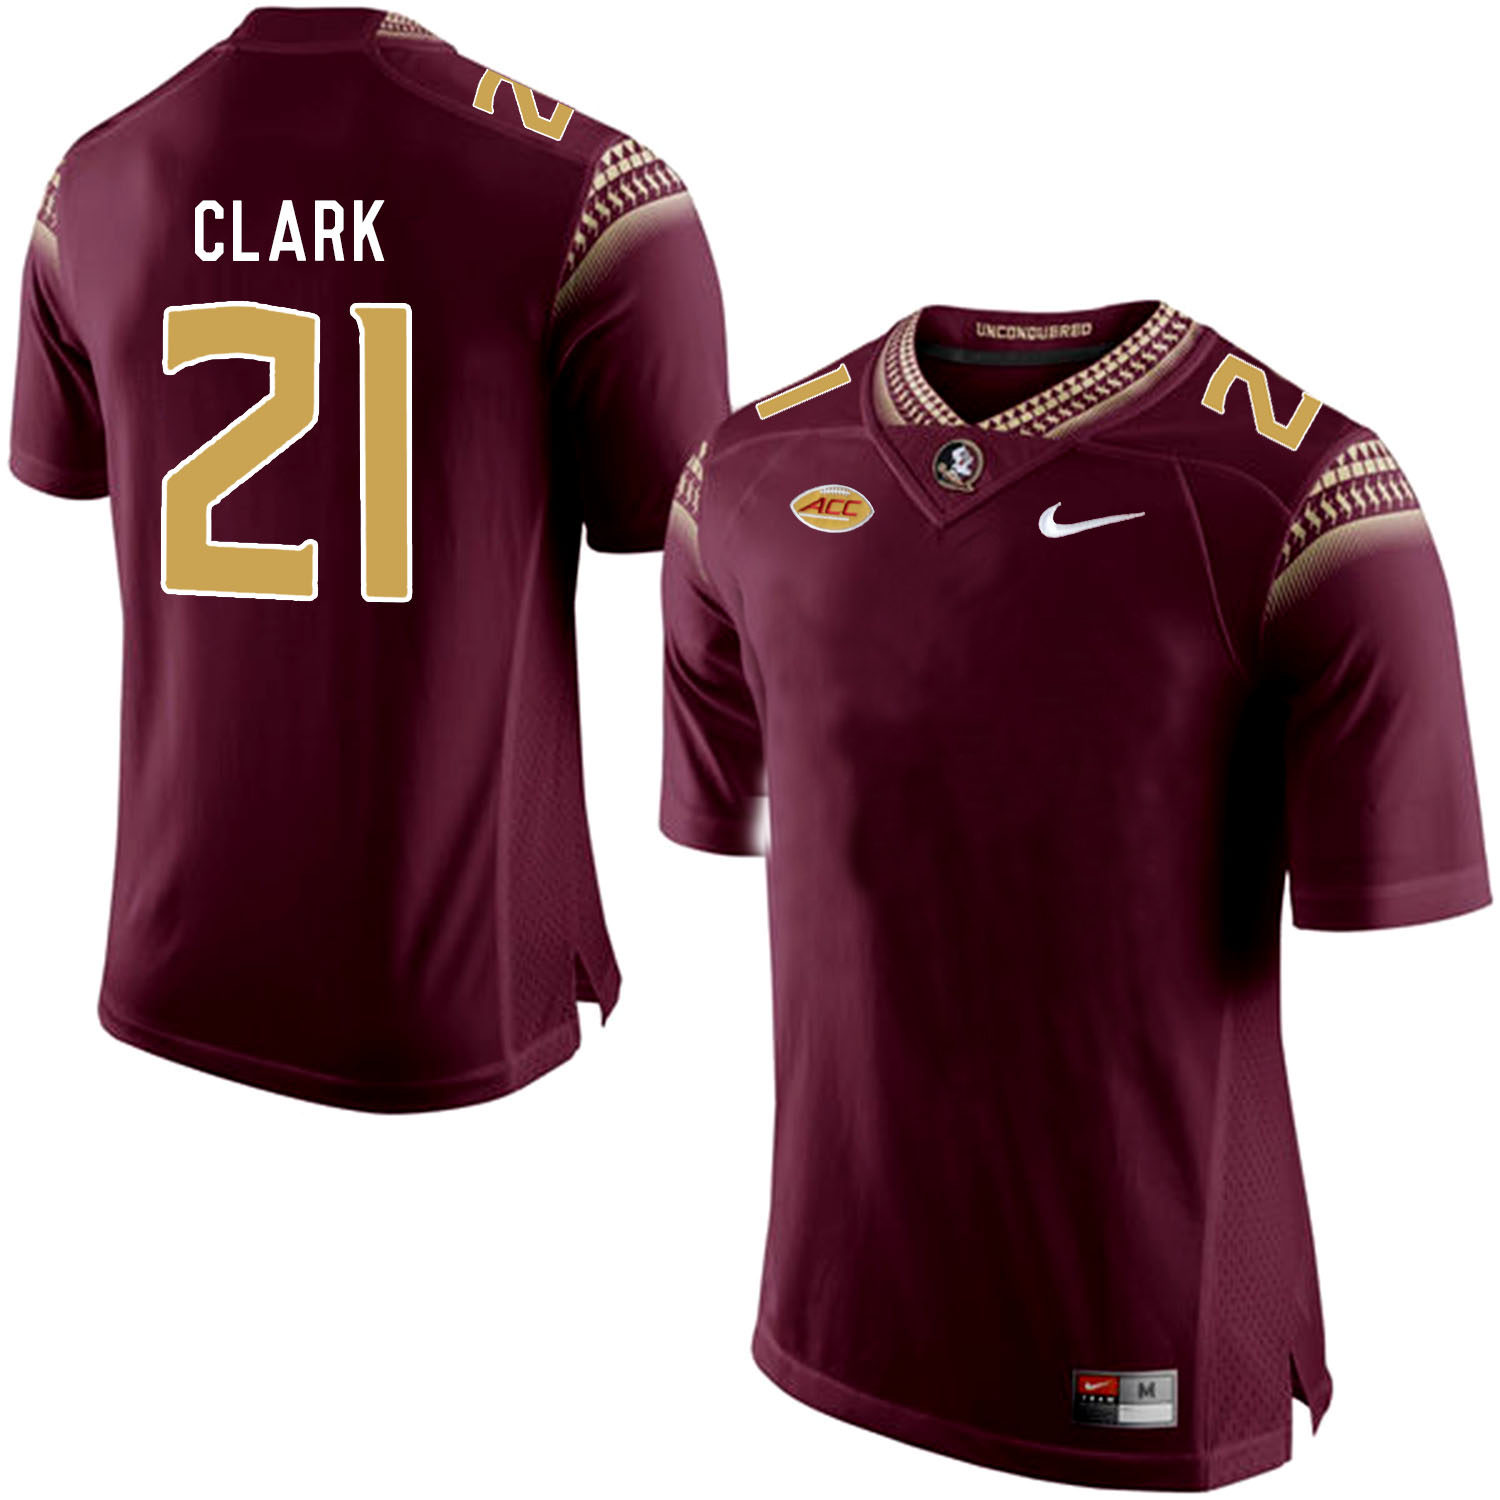 Florida State Seminoles 21 Corey Clark Black College Football Jersey